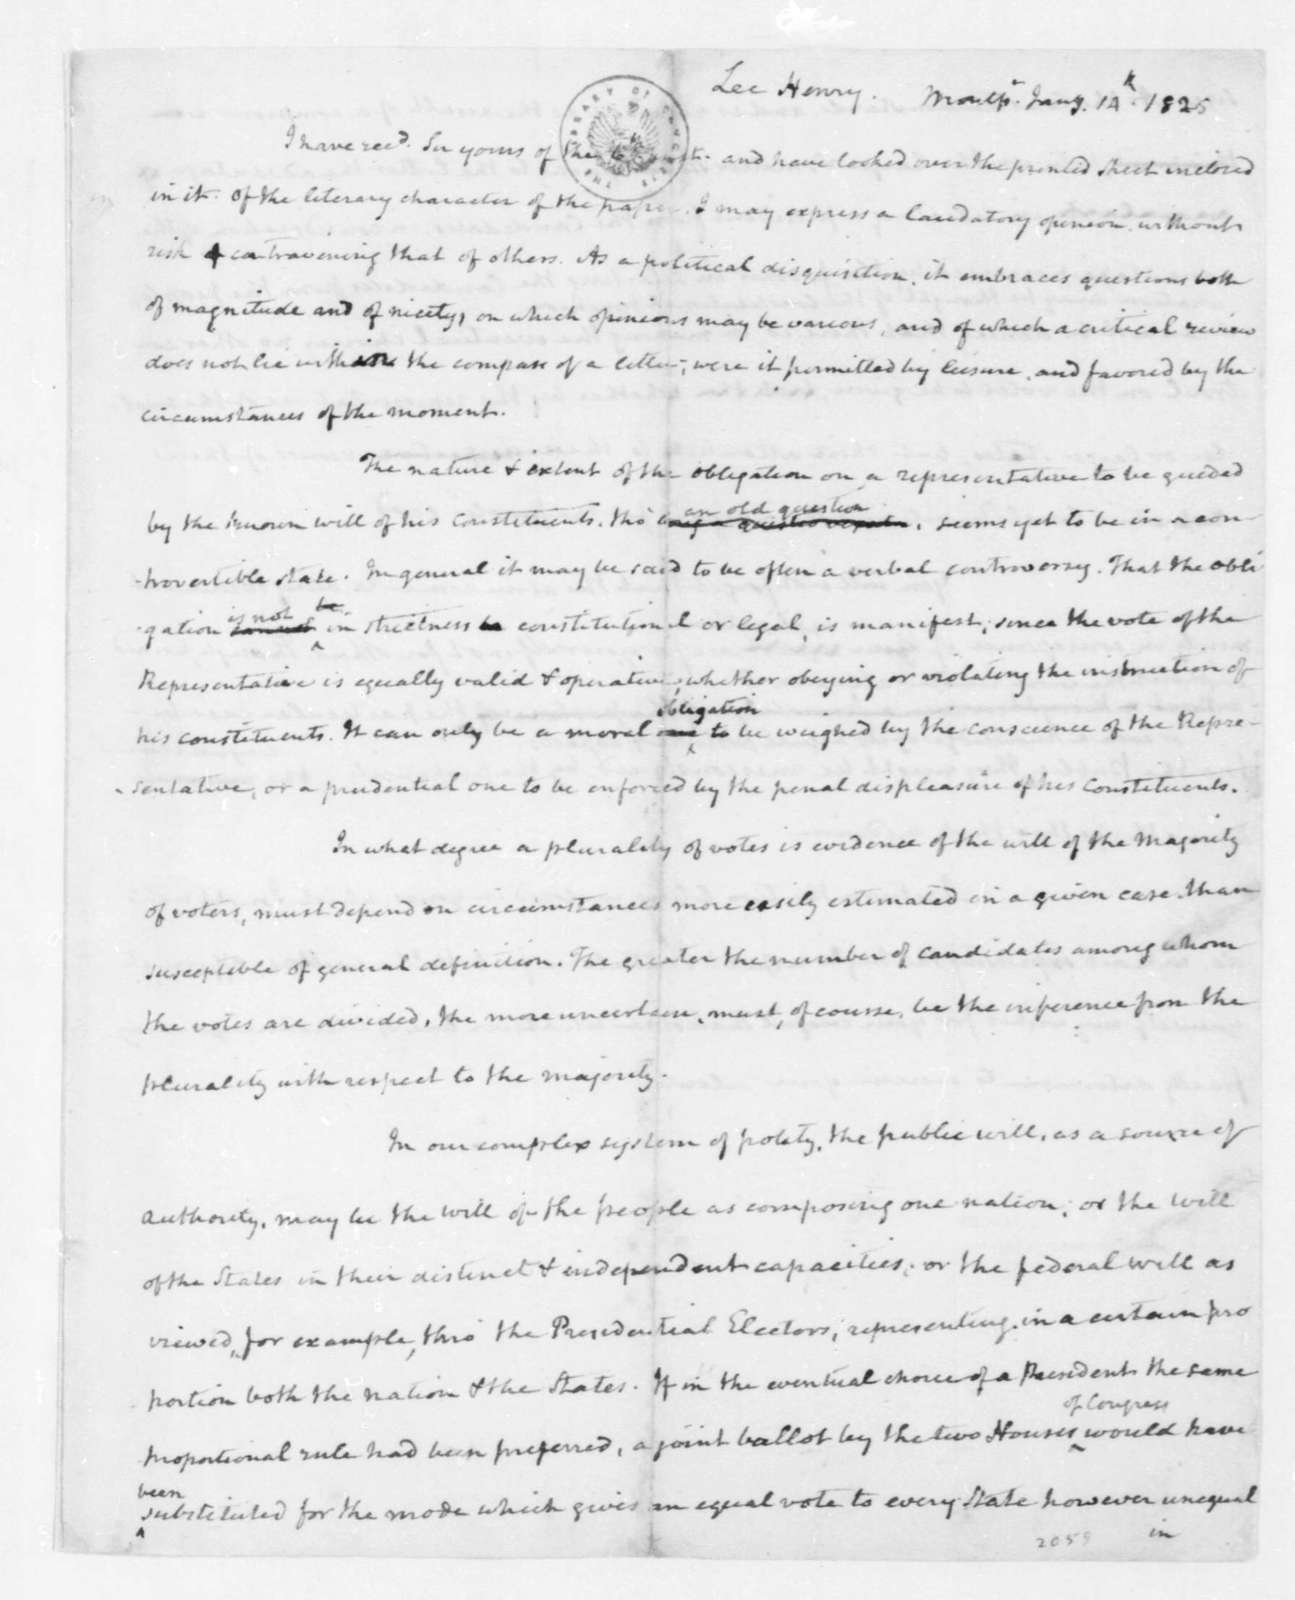 James Madison to Henry Lee, January 14, 1825.